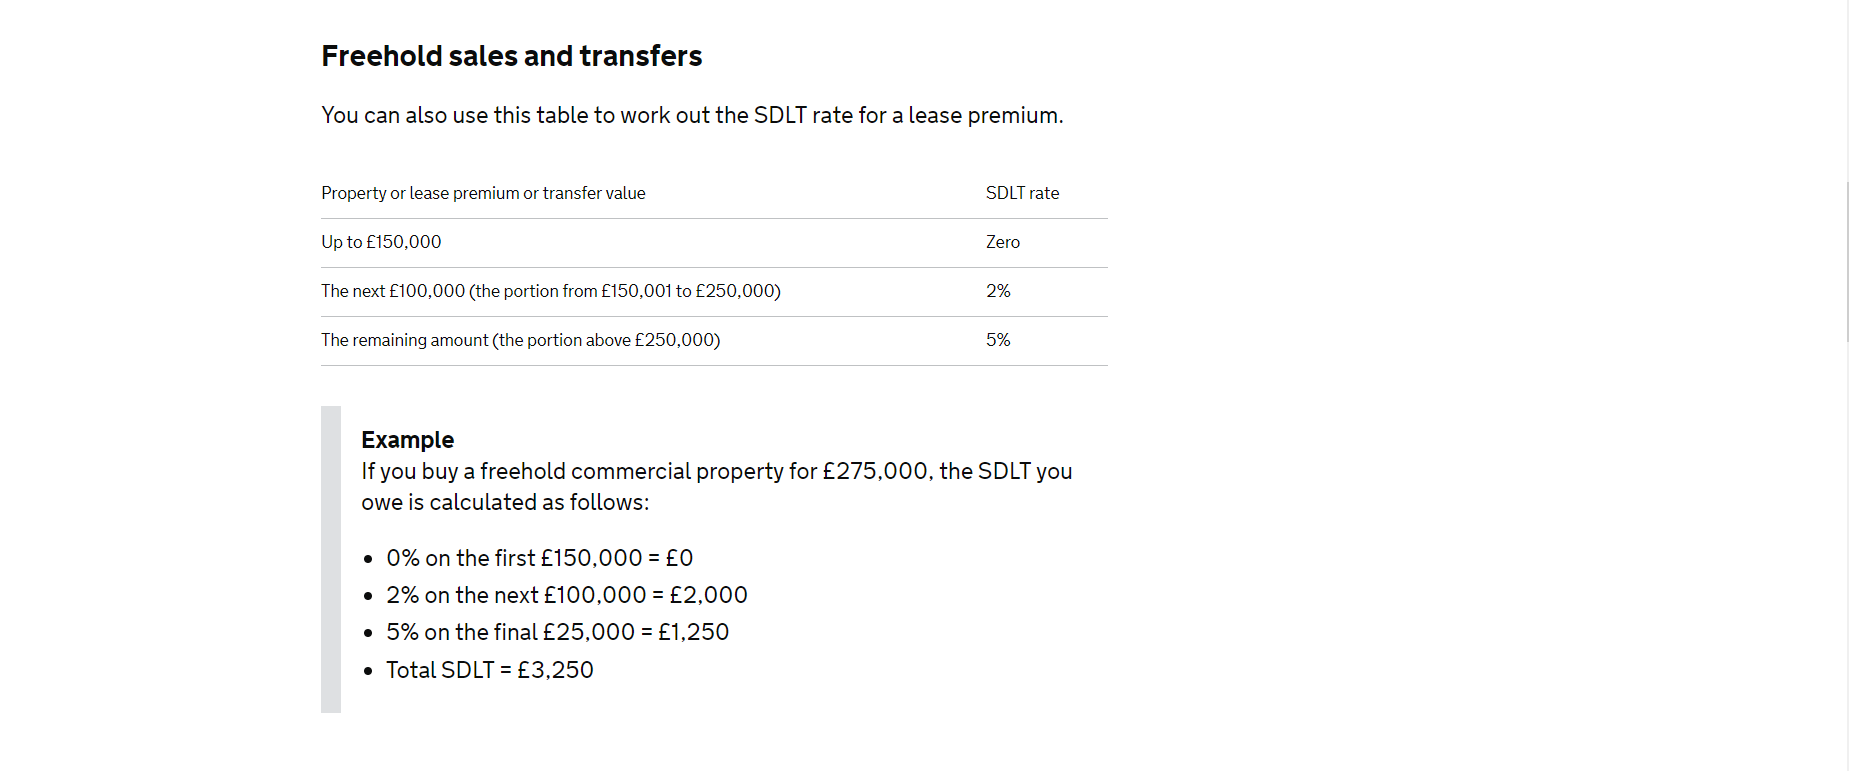 freehold sales and transfer rate